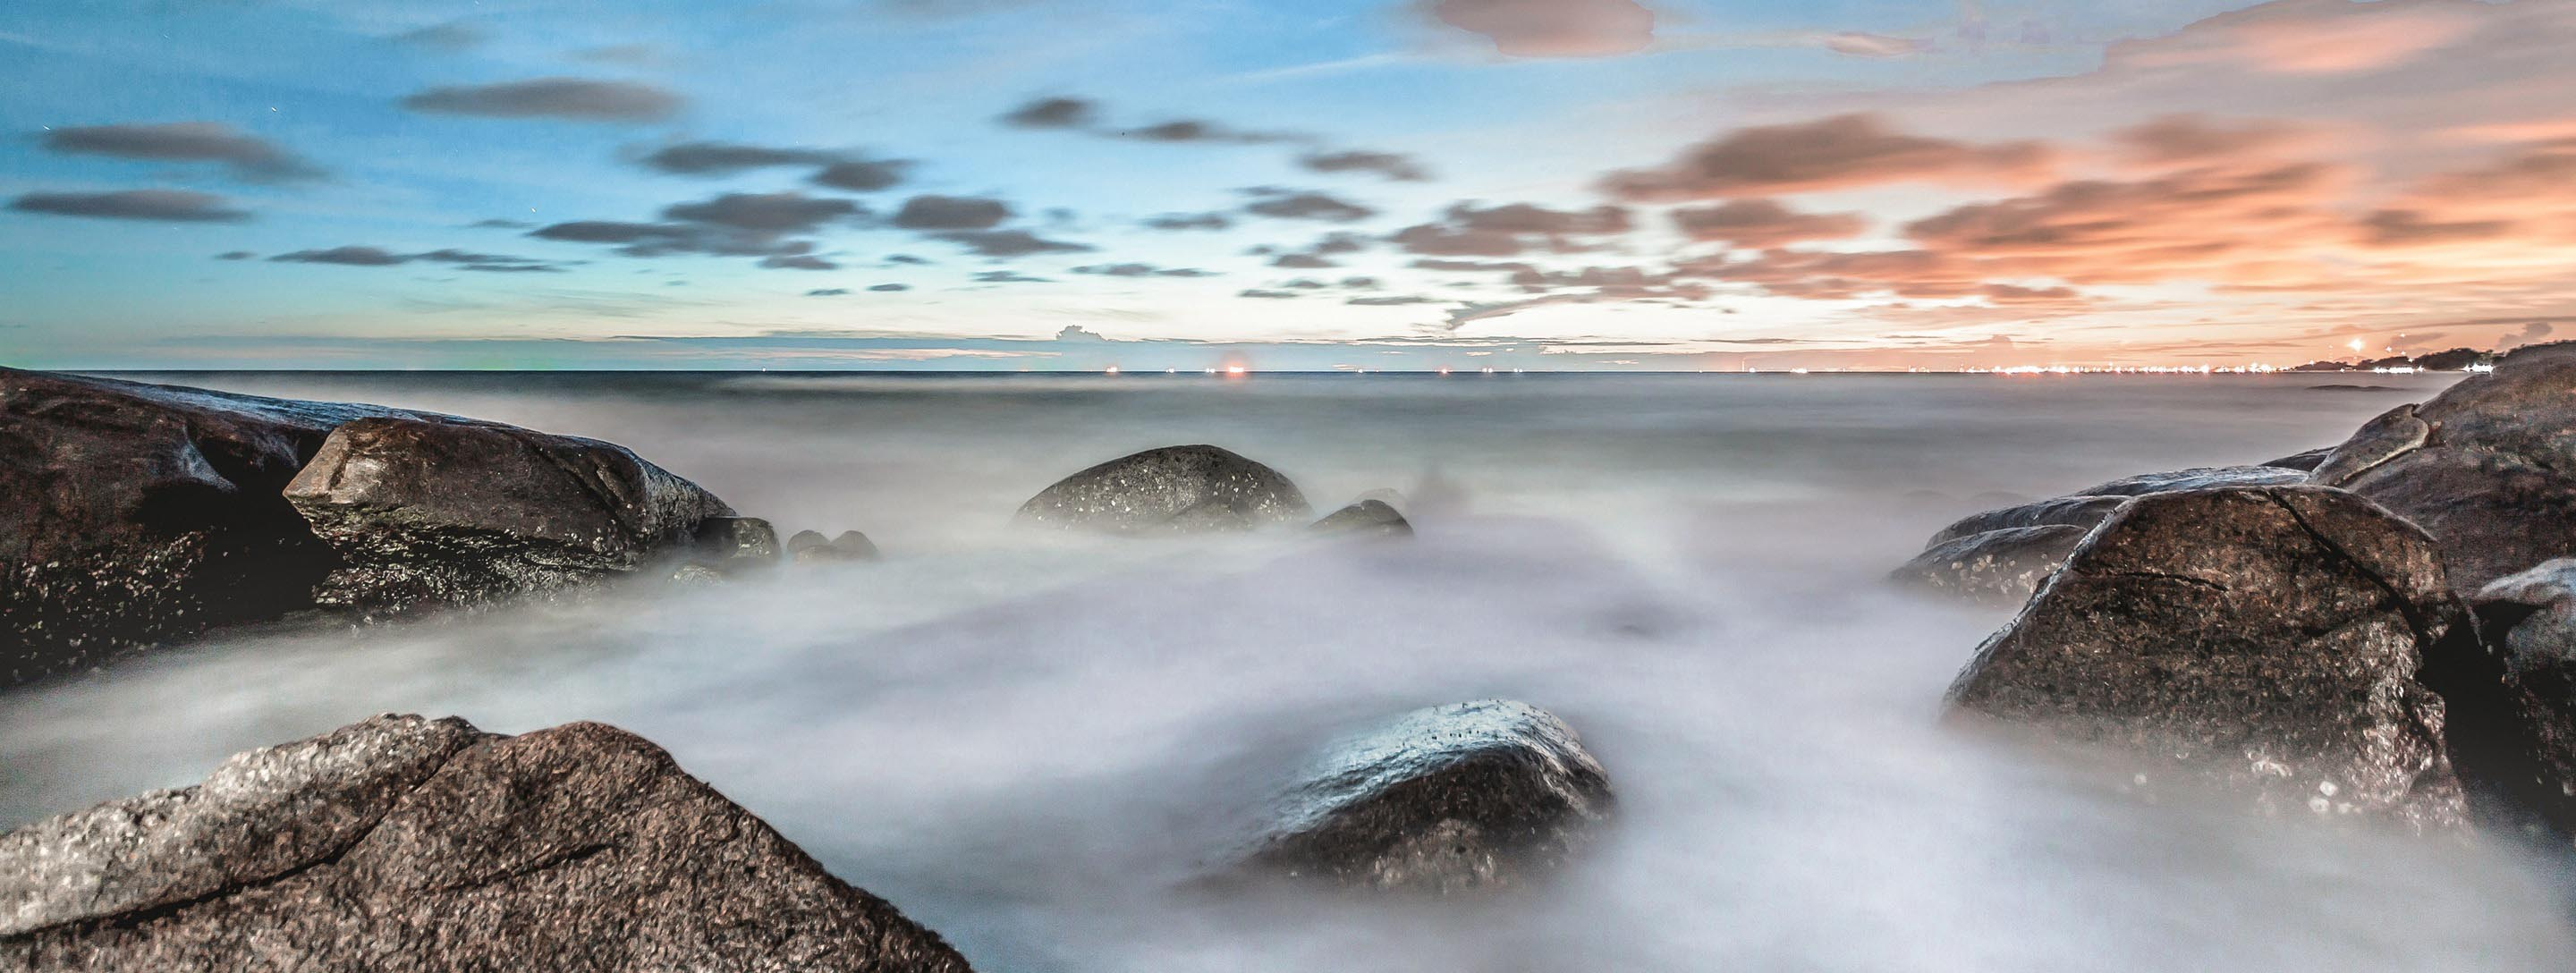 sea-sky-ocean-rocks-Pan